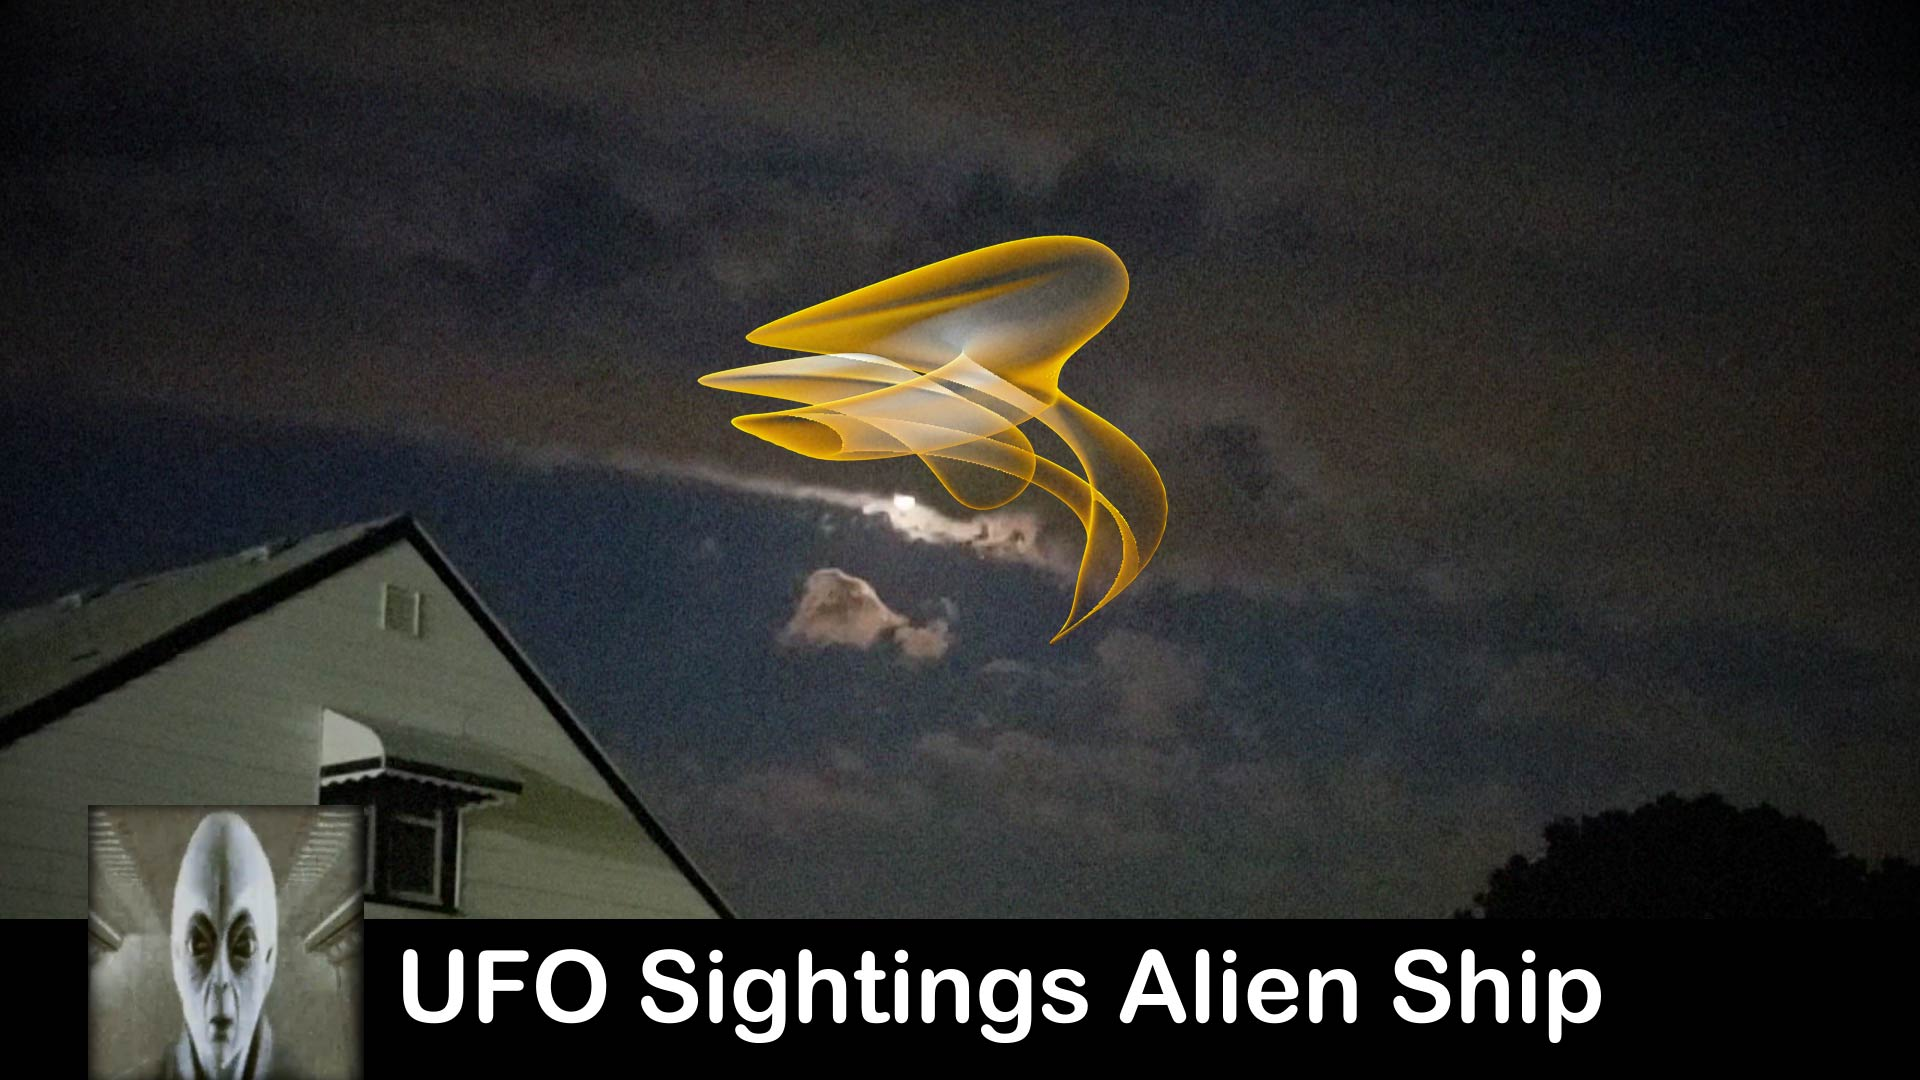 UFO Sightings Alien Ship July 27th 2018